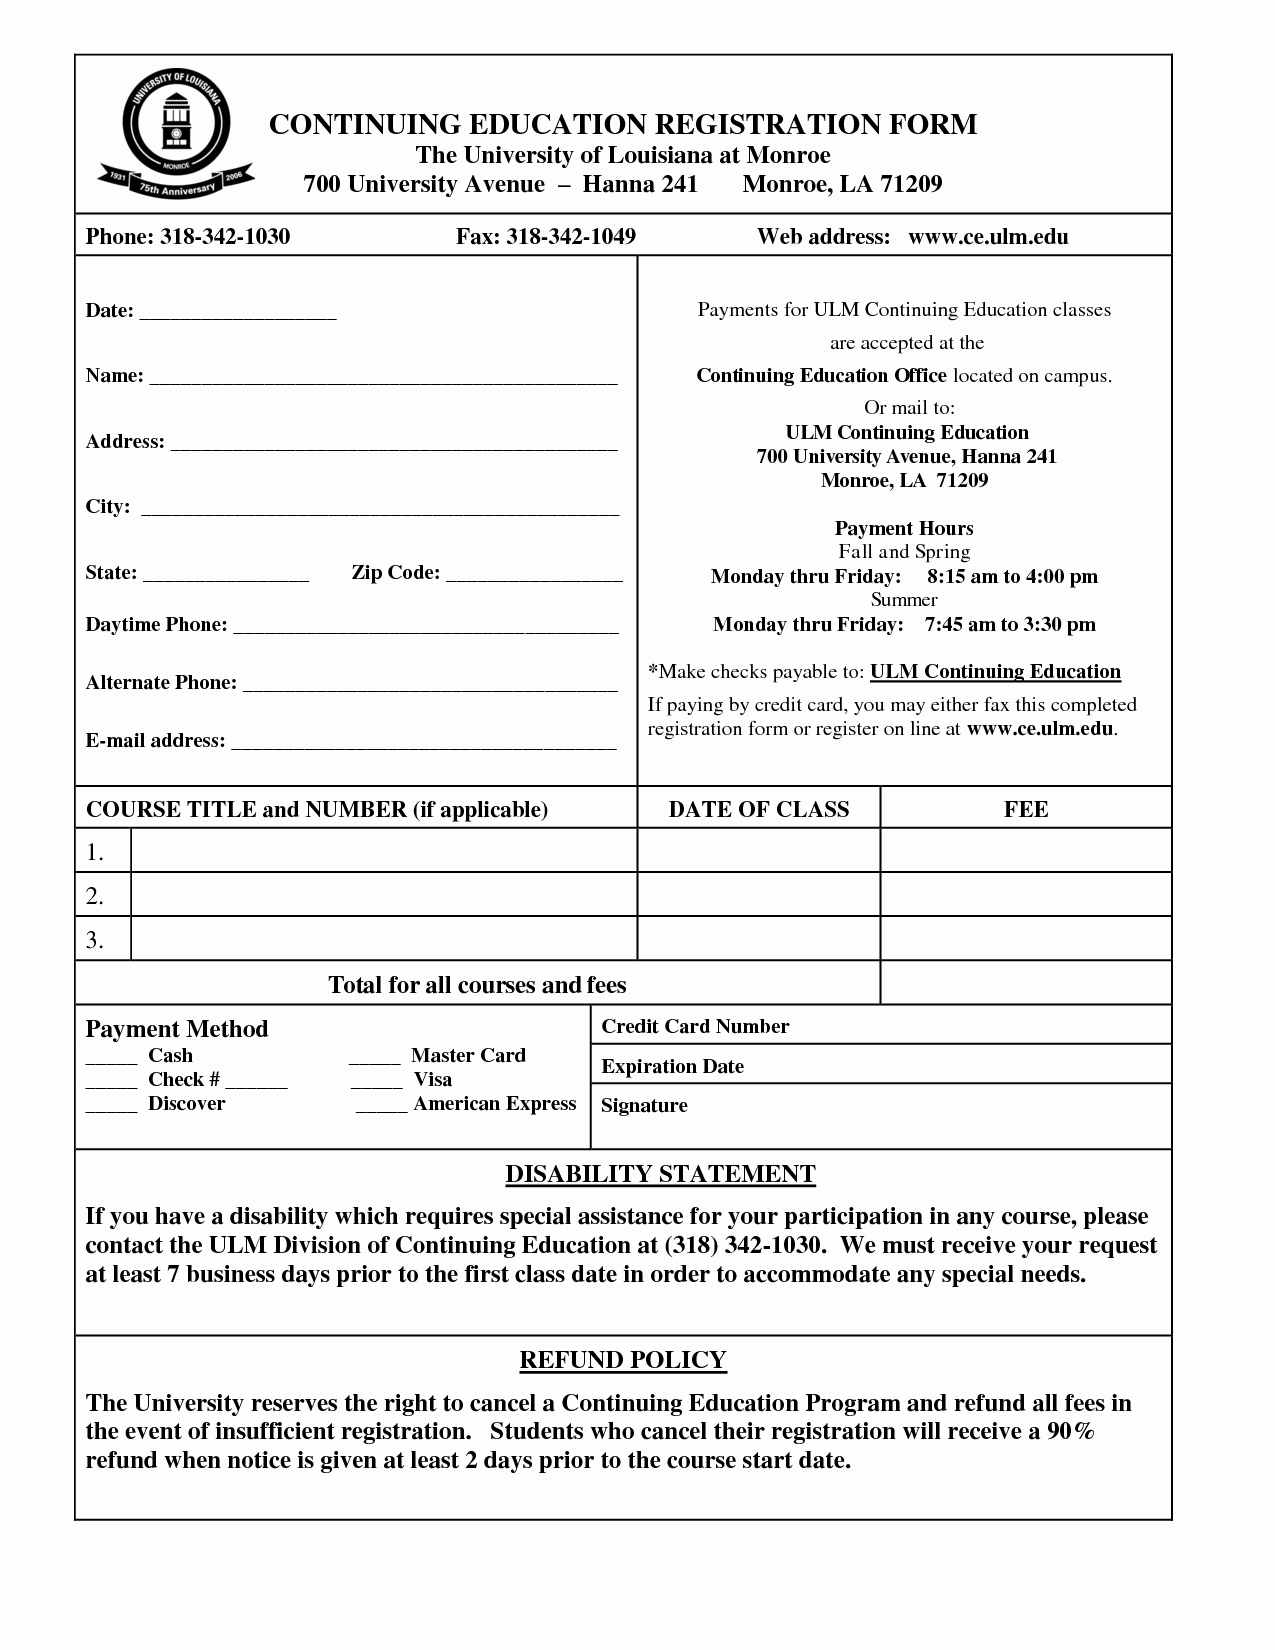 Registration form Template Word Free Lovely Registration form Template Word